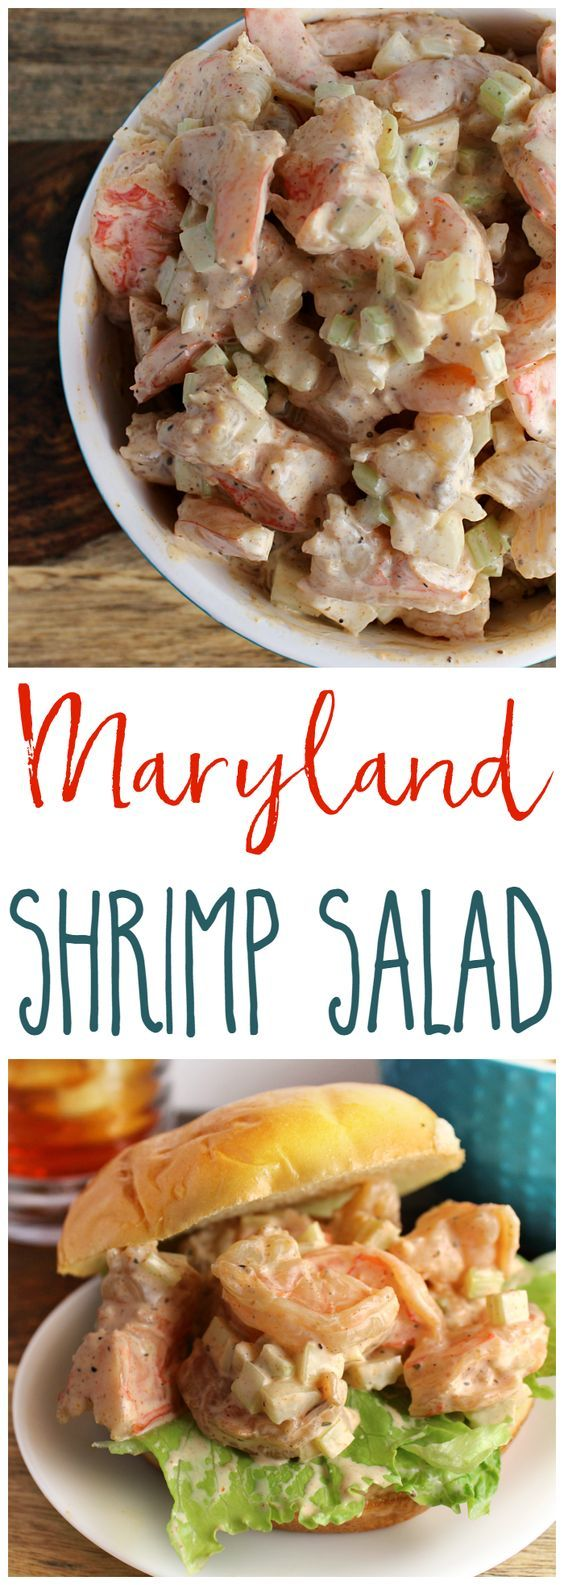 Summer is perfect for sitting on the deck, enjoying a sandwich, and a cold iced tea. Our Maryland-Style Shrimp Salad is a super yummy, yet incredibly easy- way to fancy up your sandwich! #TrueTeaTaste AD